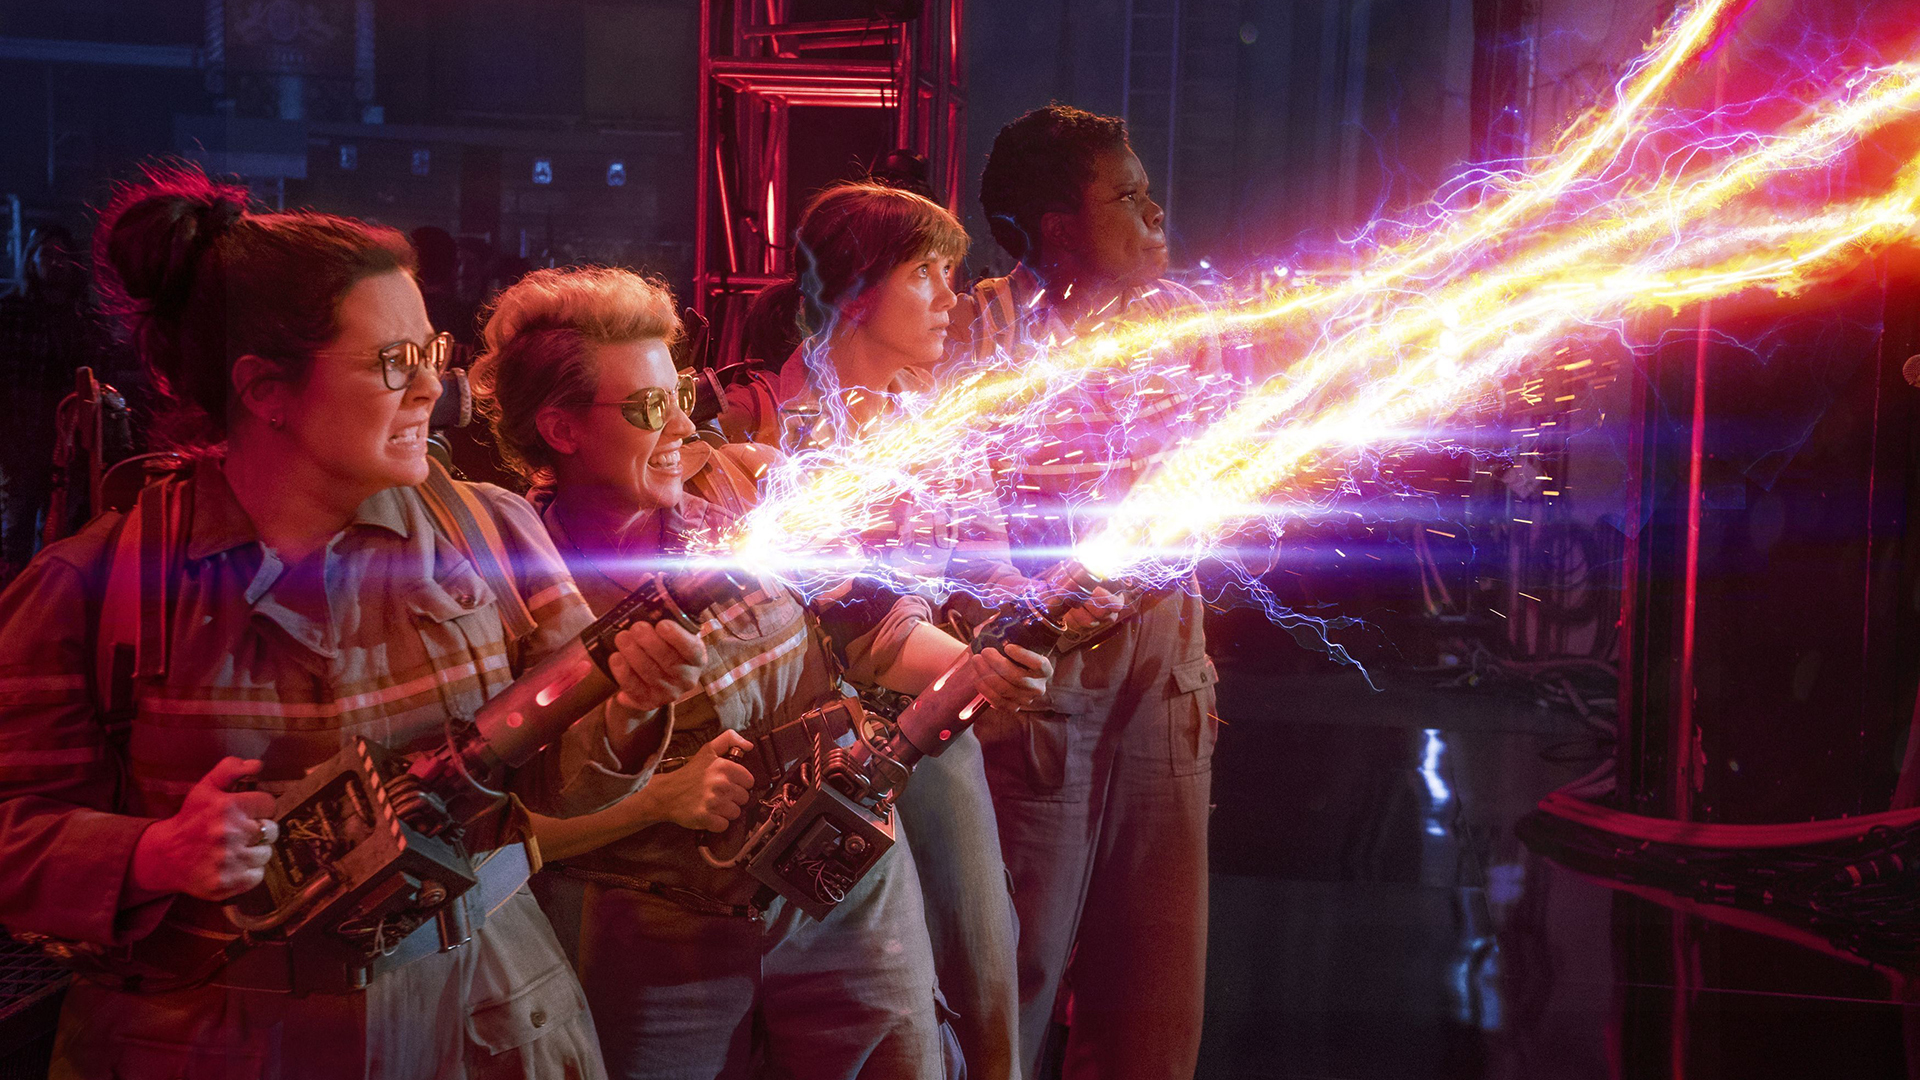 Undated Film Still Handout from Ghostbusters. Pictured: Abby (Melissa McCarthy), Erin (Kristen Wiig), Holtzmann (Kate McKinnon) and Patty (Leslie Jones). See PA Feature FILM Ghostbusters. Picture credit should read: PA Photo/Sony Pictures. WARNING: This picture must only be used to accompany PA Feature FILM Ghostbusters.